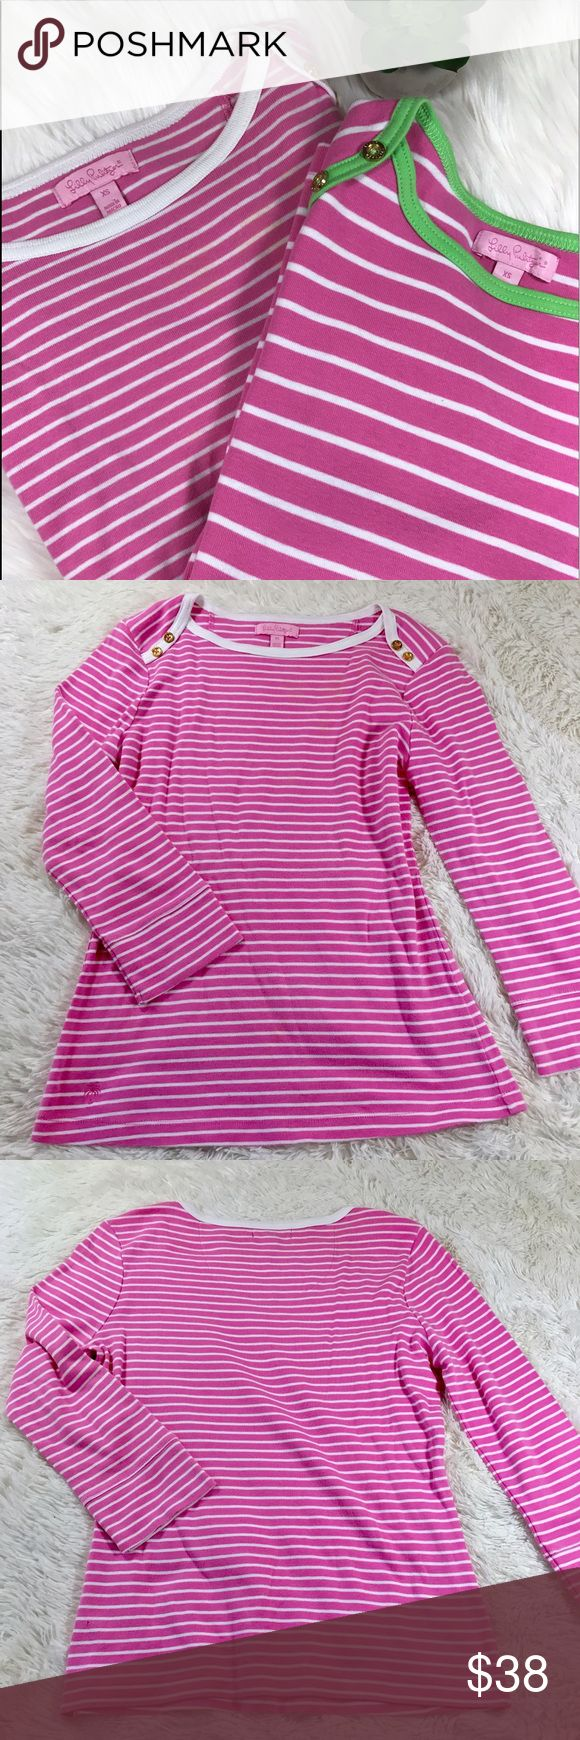 💓 2 in 1 Lilly Pulitzer long sleeve tees 💓 Adorable Lilly Pulitzer long sleeve tops with gold button detailing on the shoulders   💖 The first is baby pink and white striped and the second is baby pink and white striped with green detailing  💚 Both are XS 💖 Excellent condition   💚Price is firm💚 Lilly Pulitzer Tops Tees - Long Sleeve